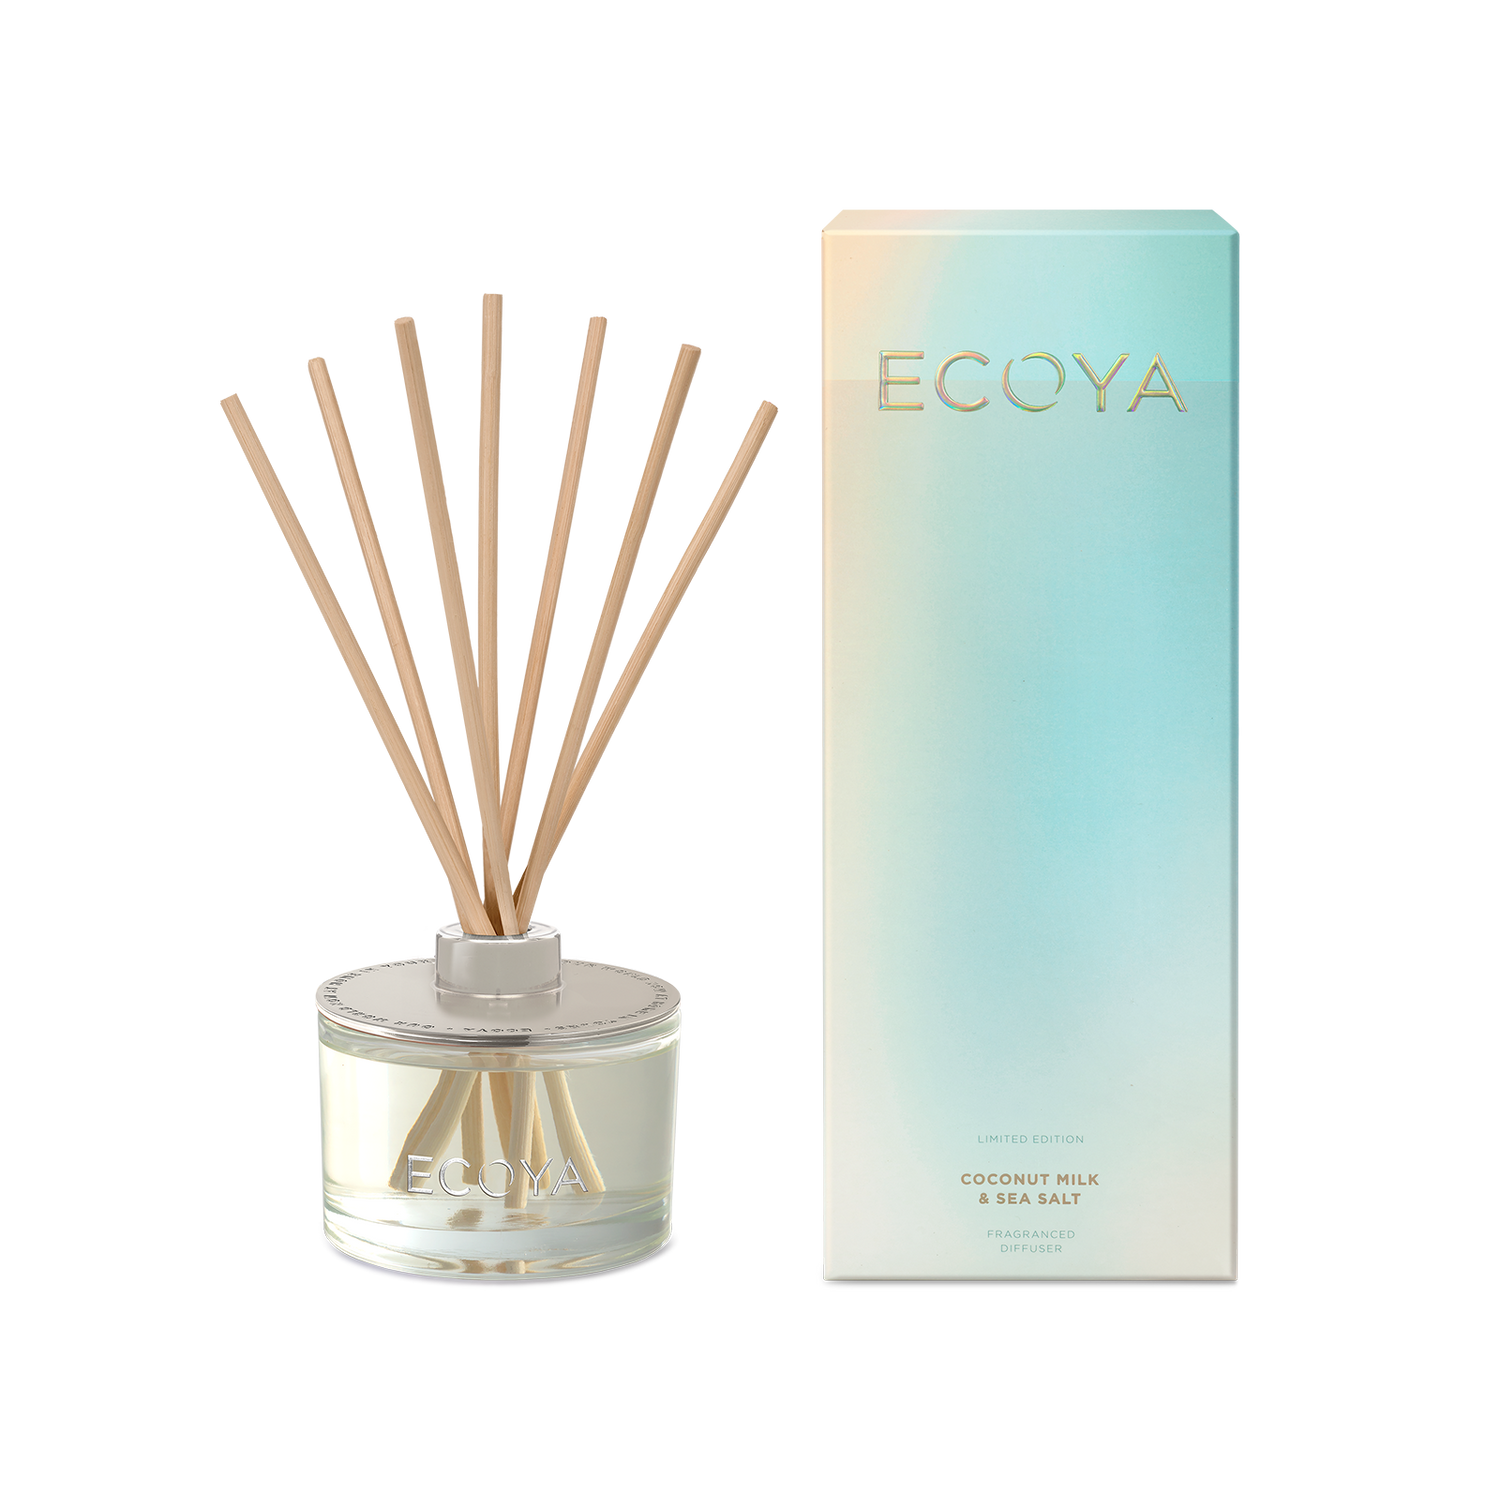 ECOYA New Home Fragrances